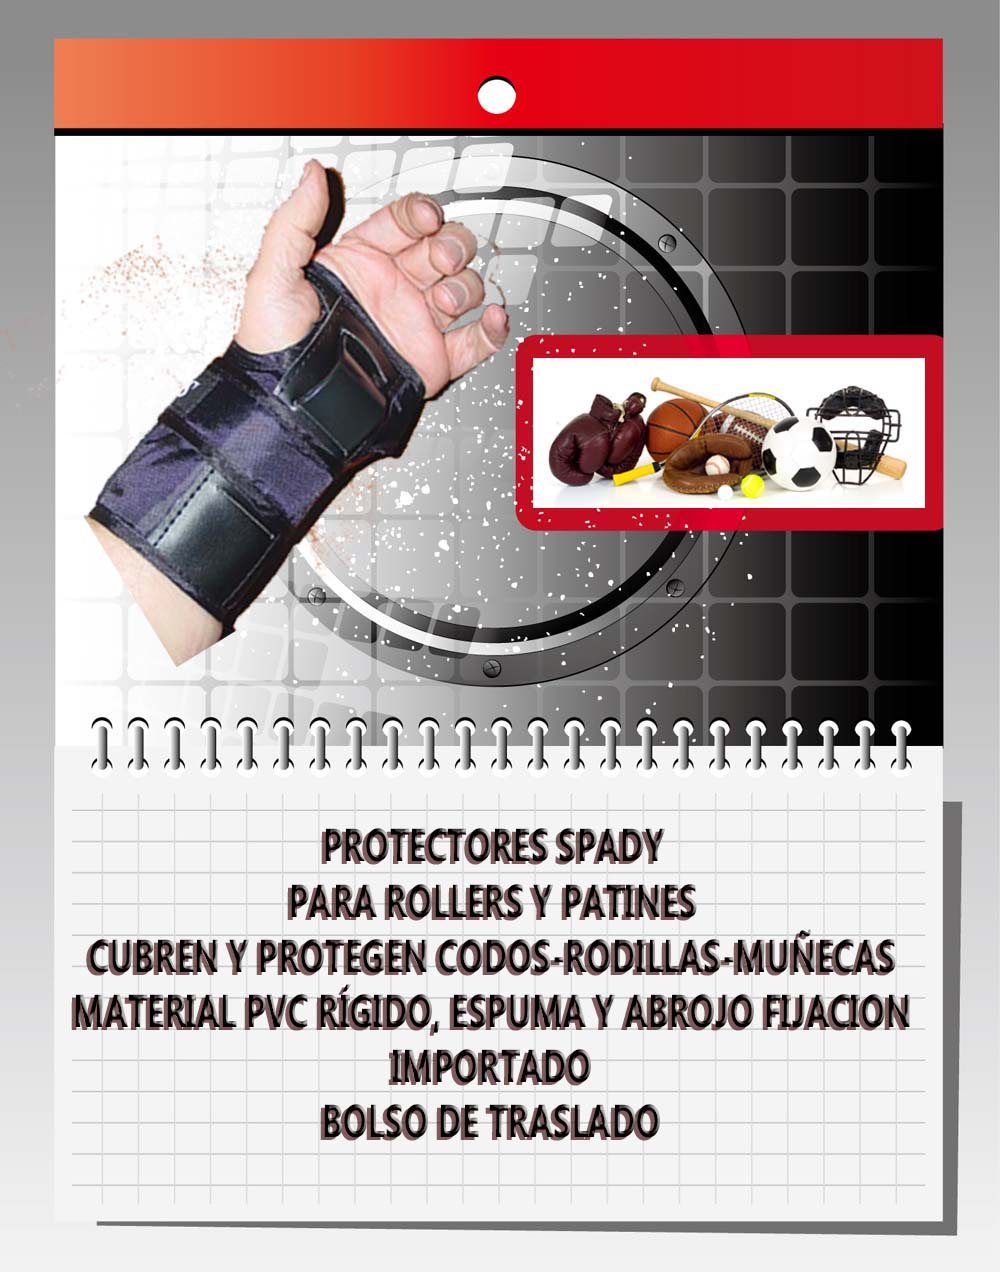 protectores spady para rollers y patines